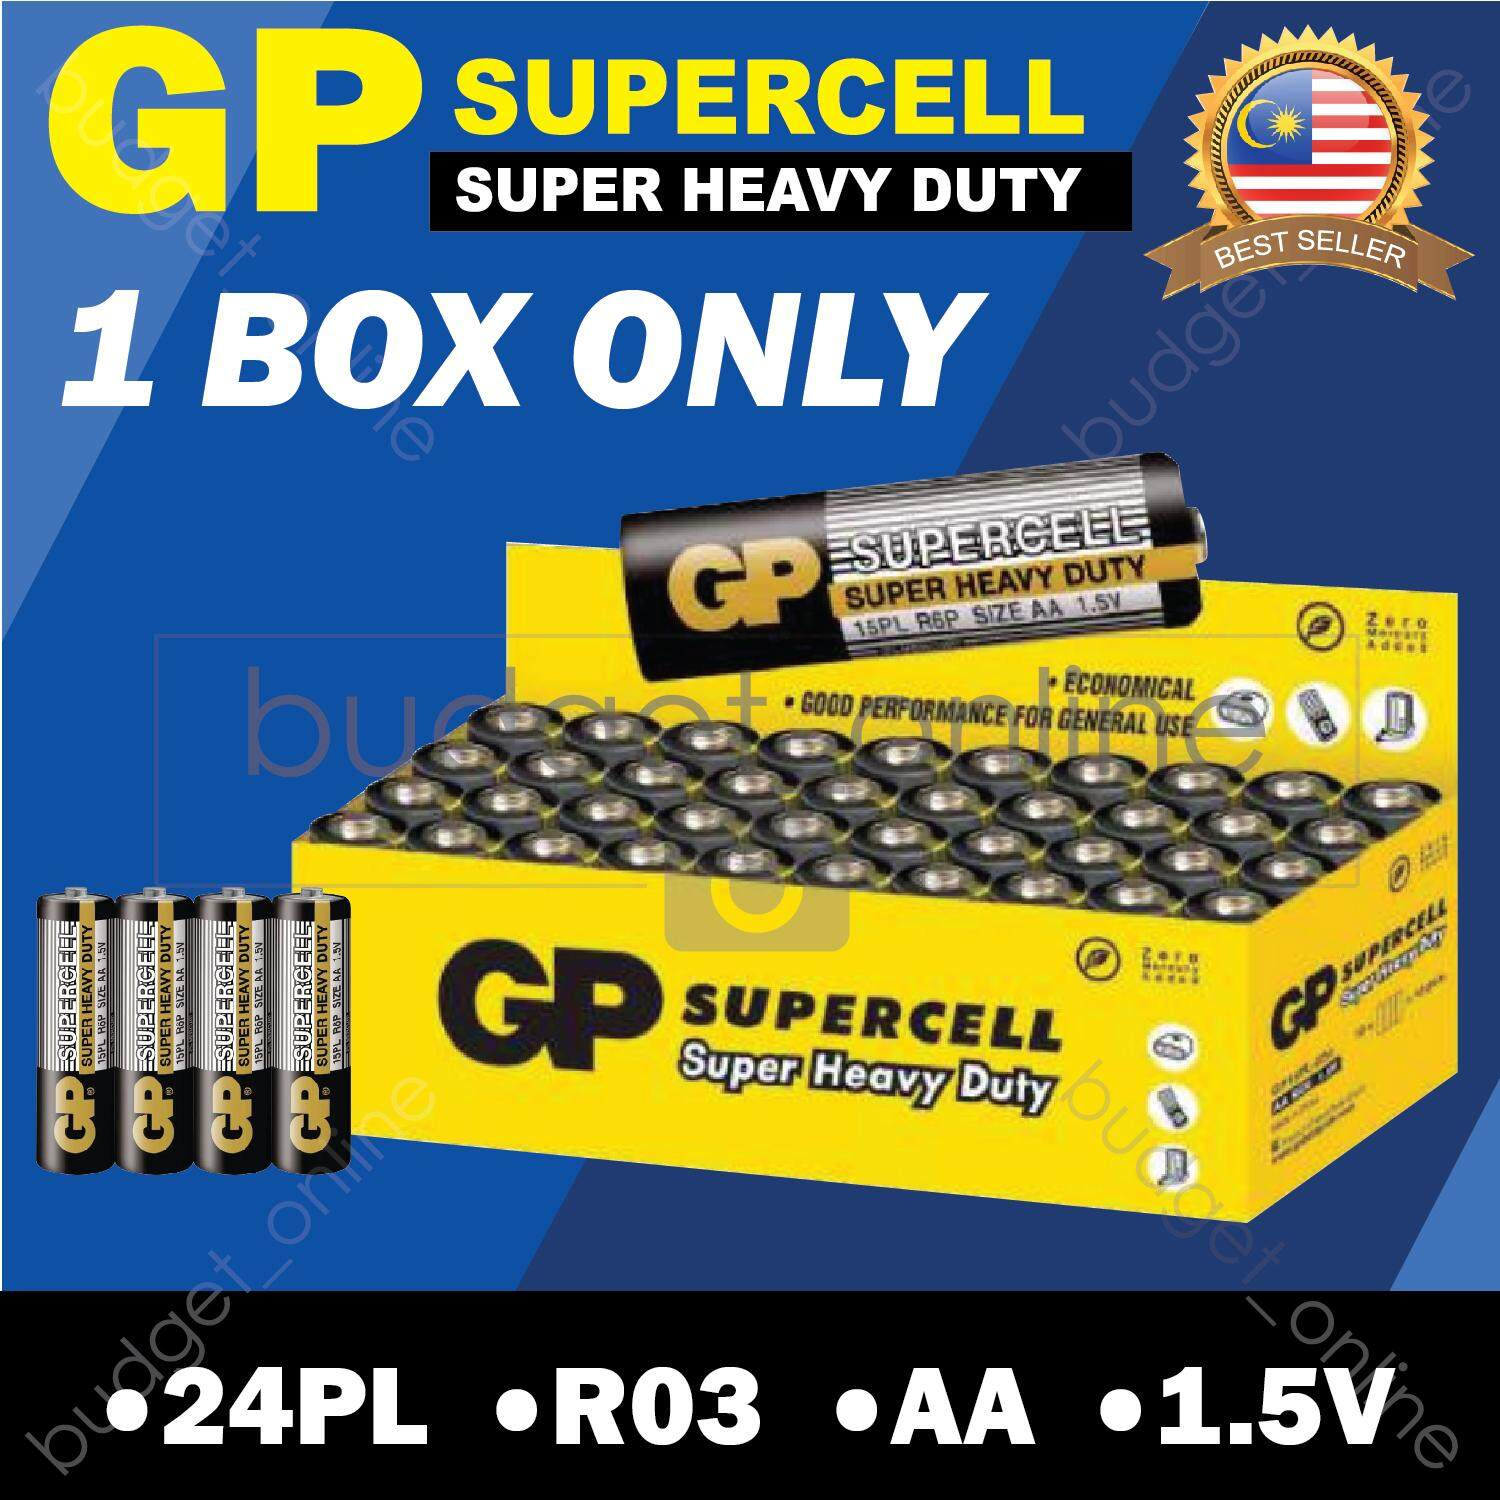 GP SUPERCELL Super Heavy Duty AA 1.5V Battery Batteries 1 BOX ONLY